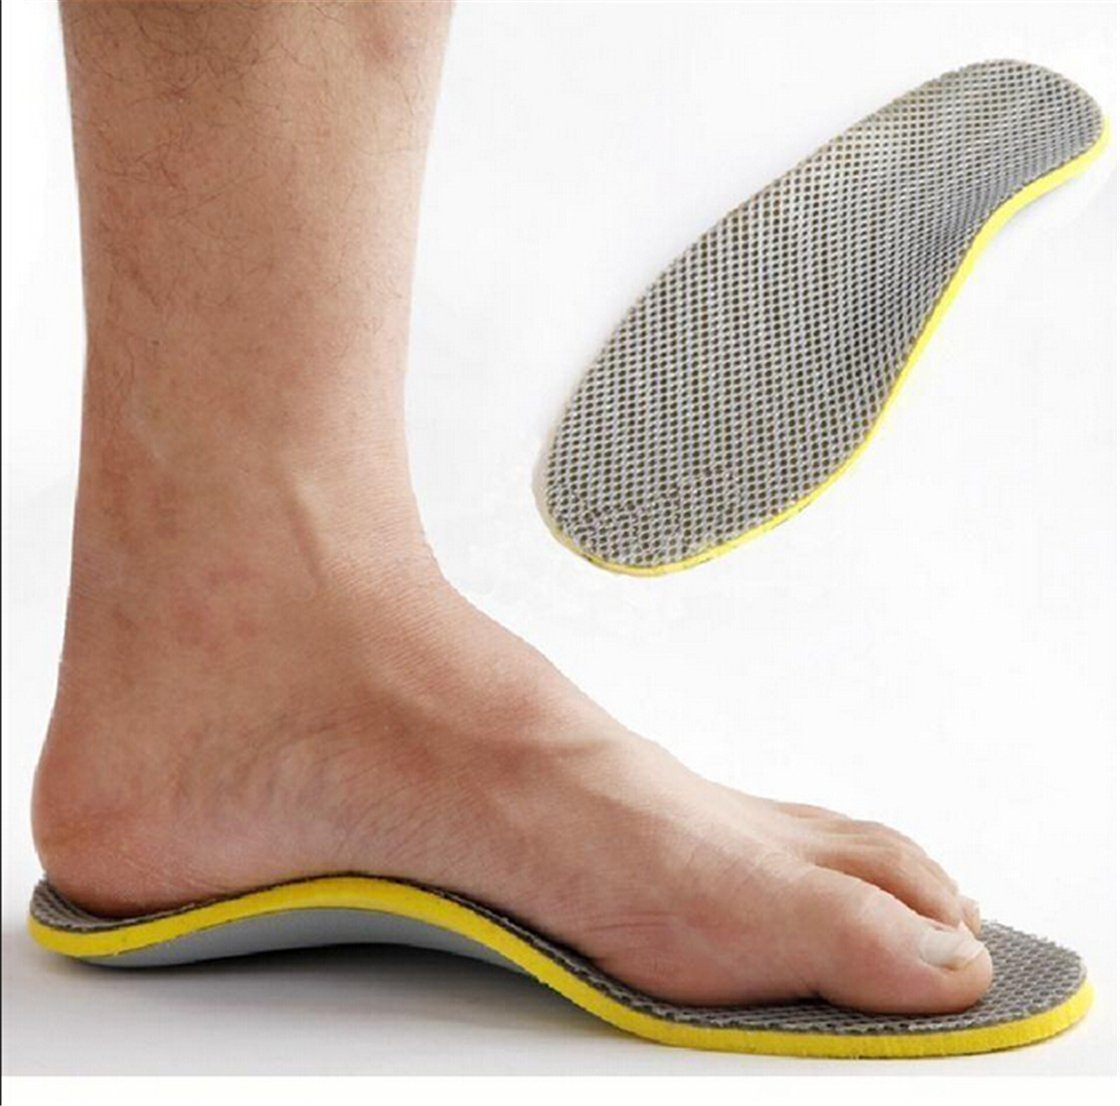 SOURBAN Foot 3D Flat Feet Arch Support Insoles Comfort & Relief from Flat Feet